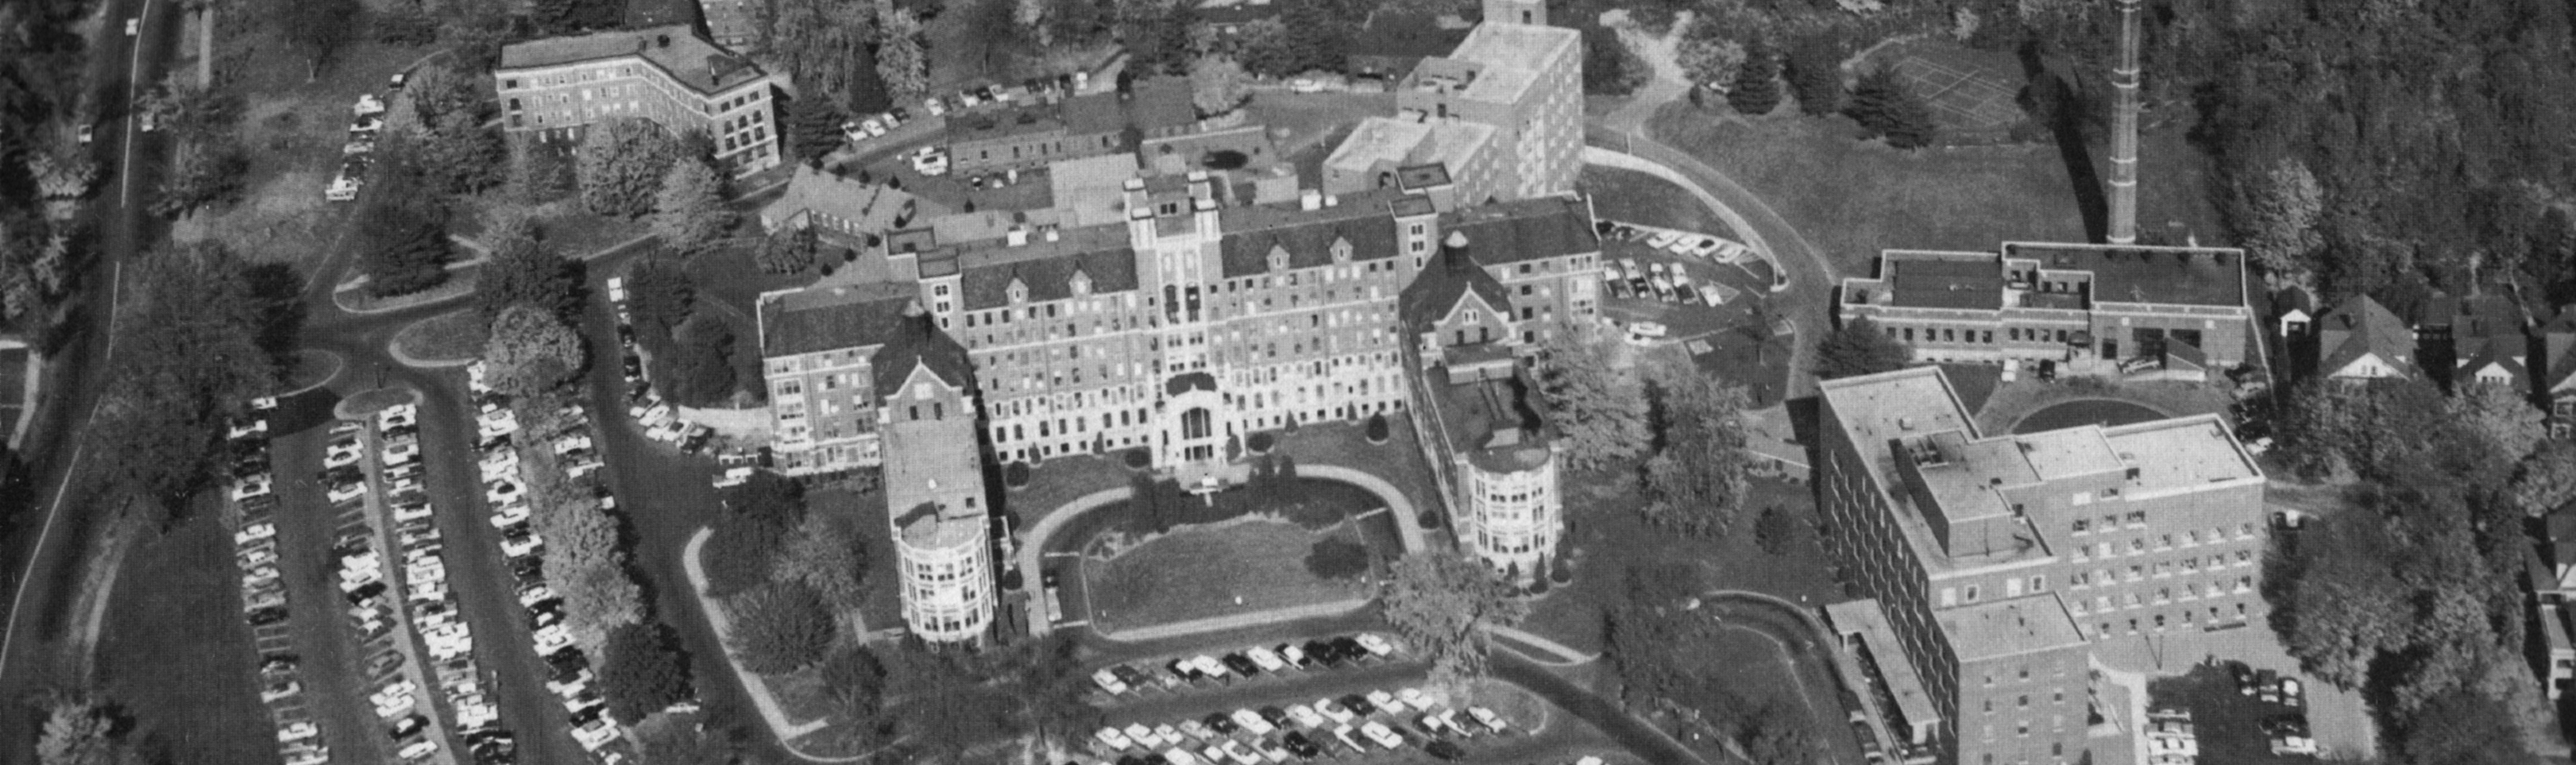 The History of Baystate Medical Center